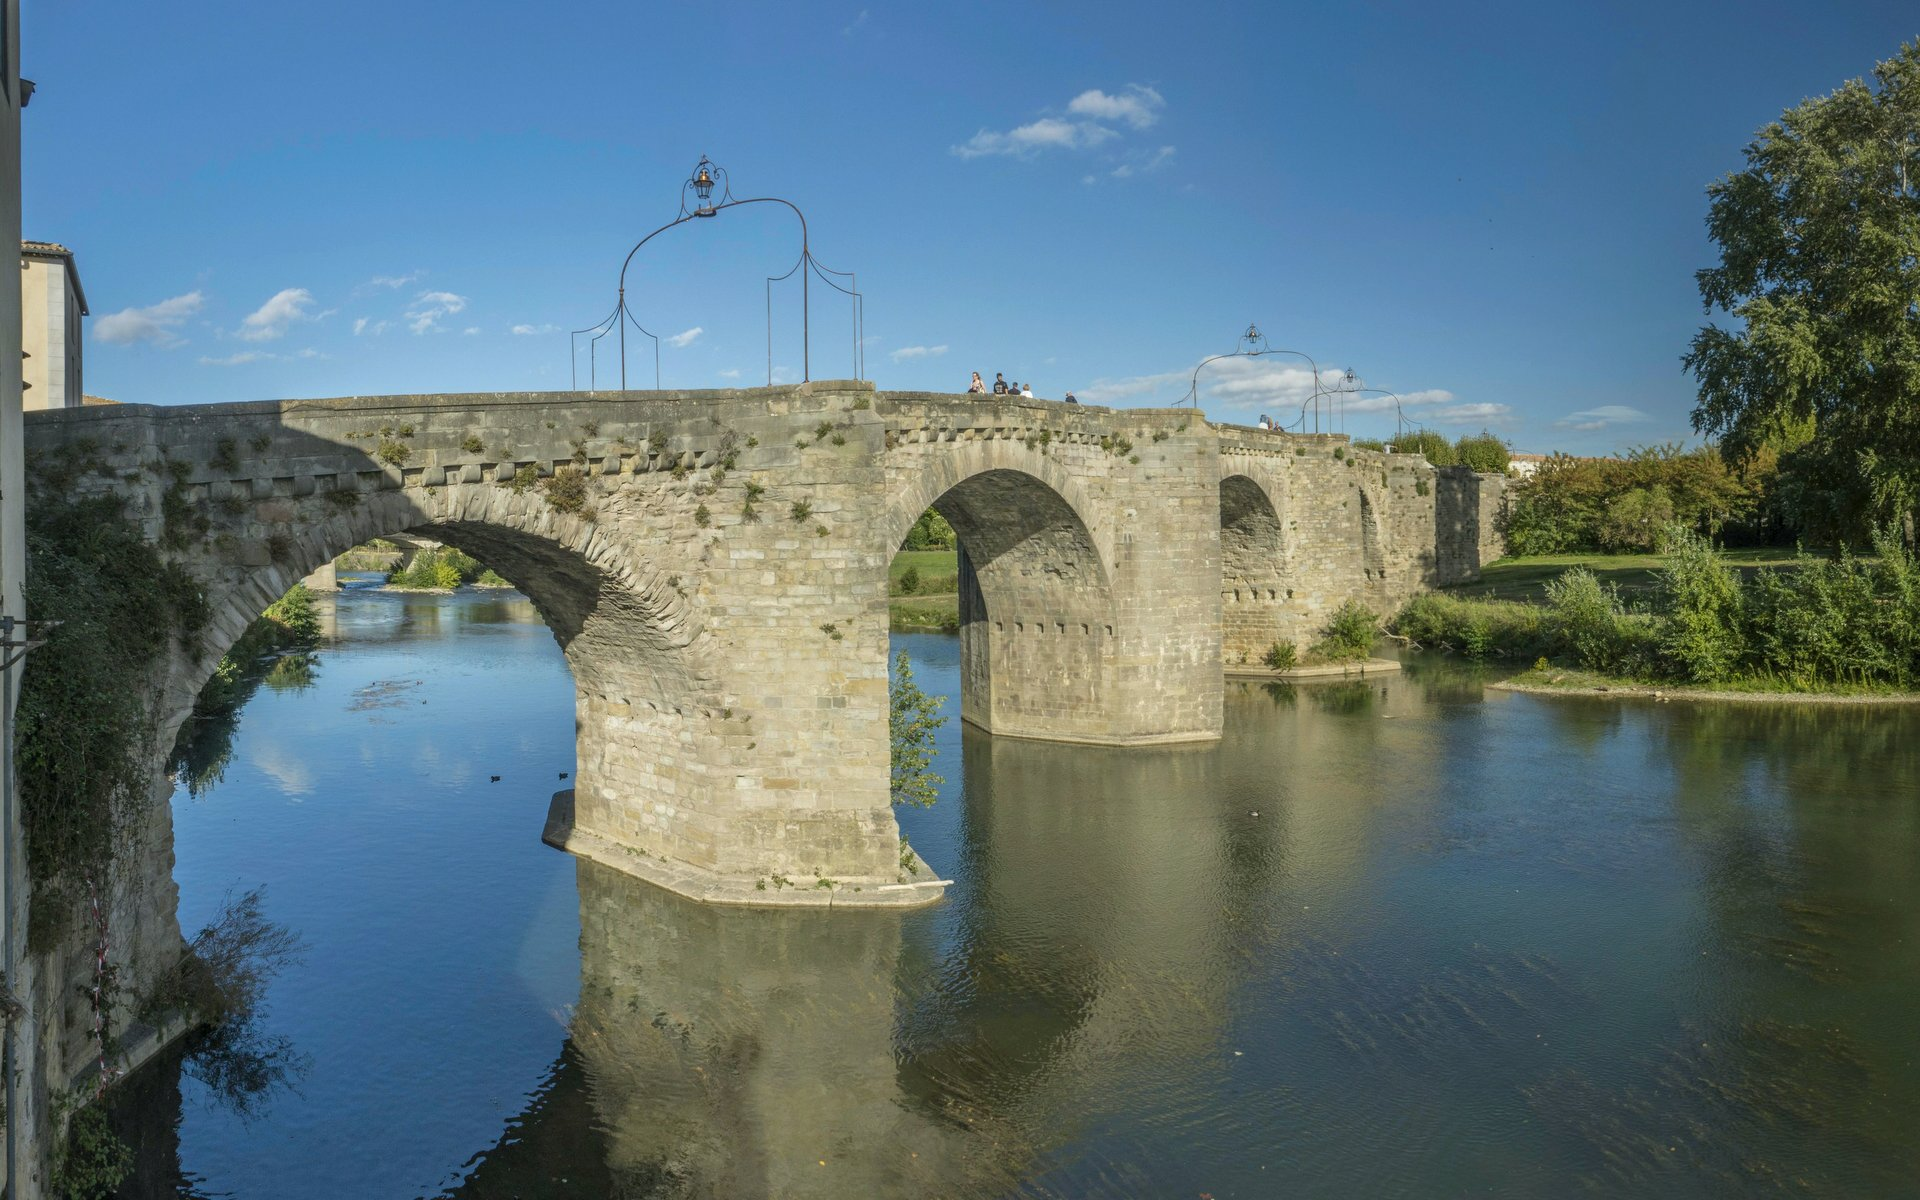 Pont Vieux in Carcassonne